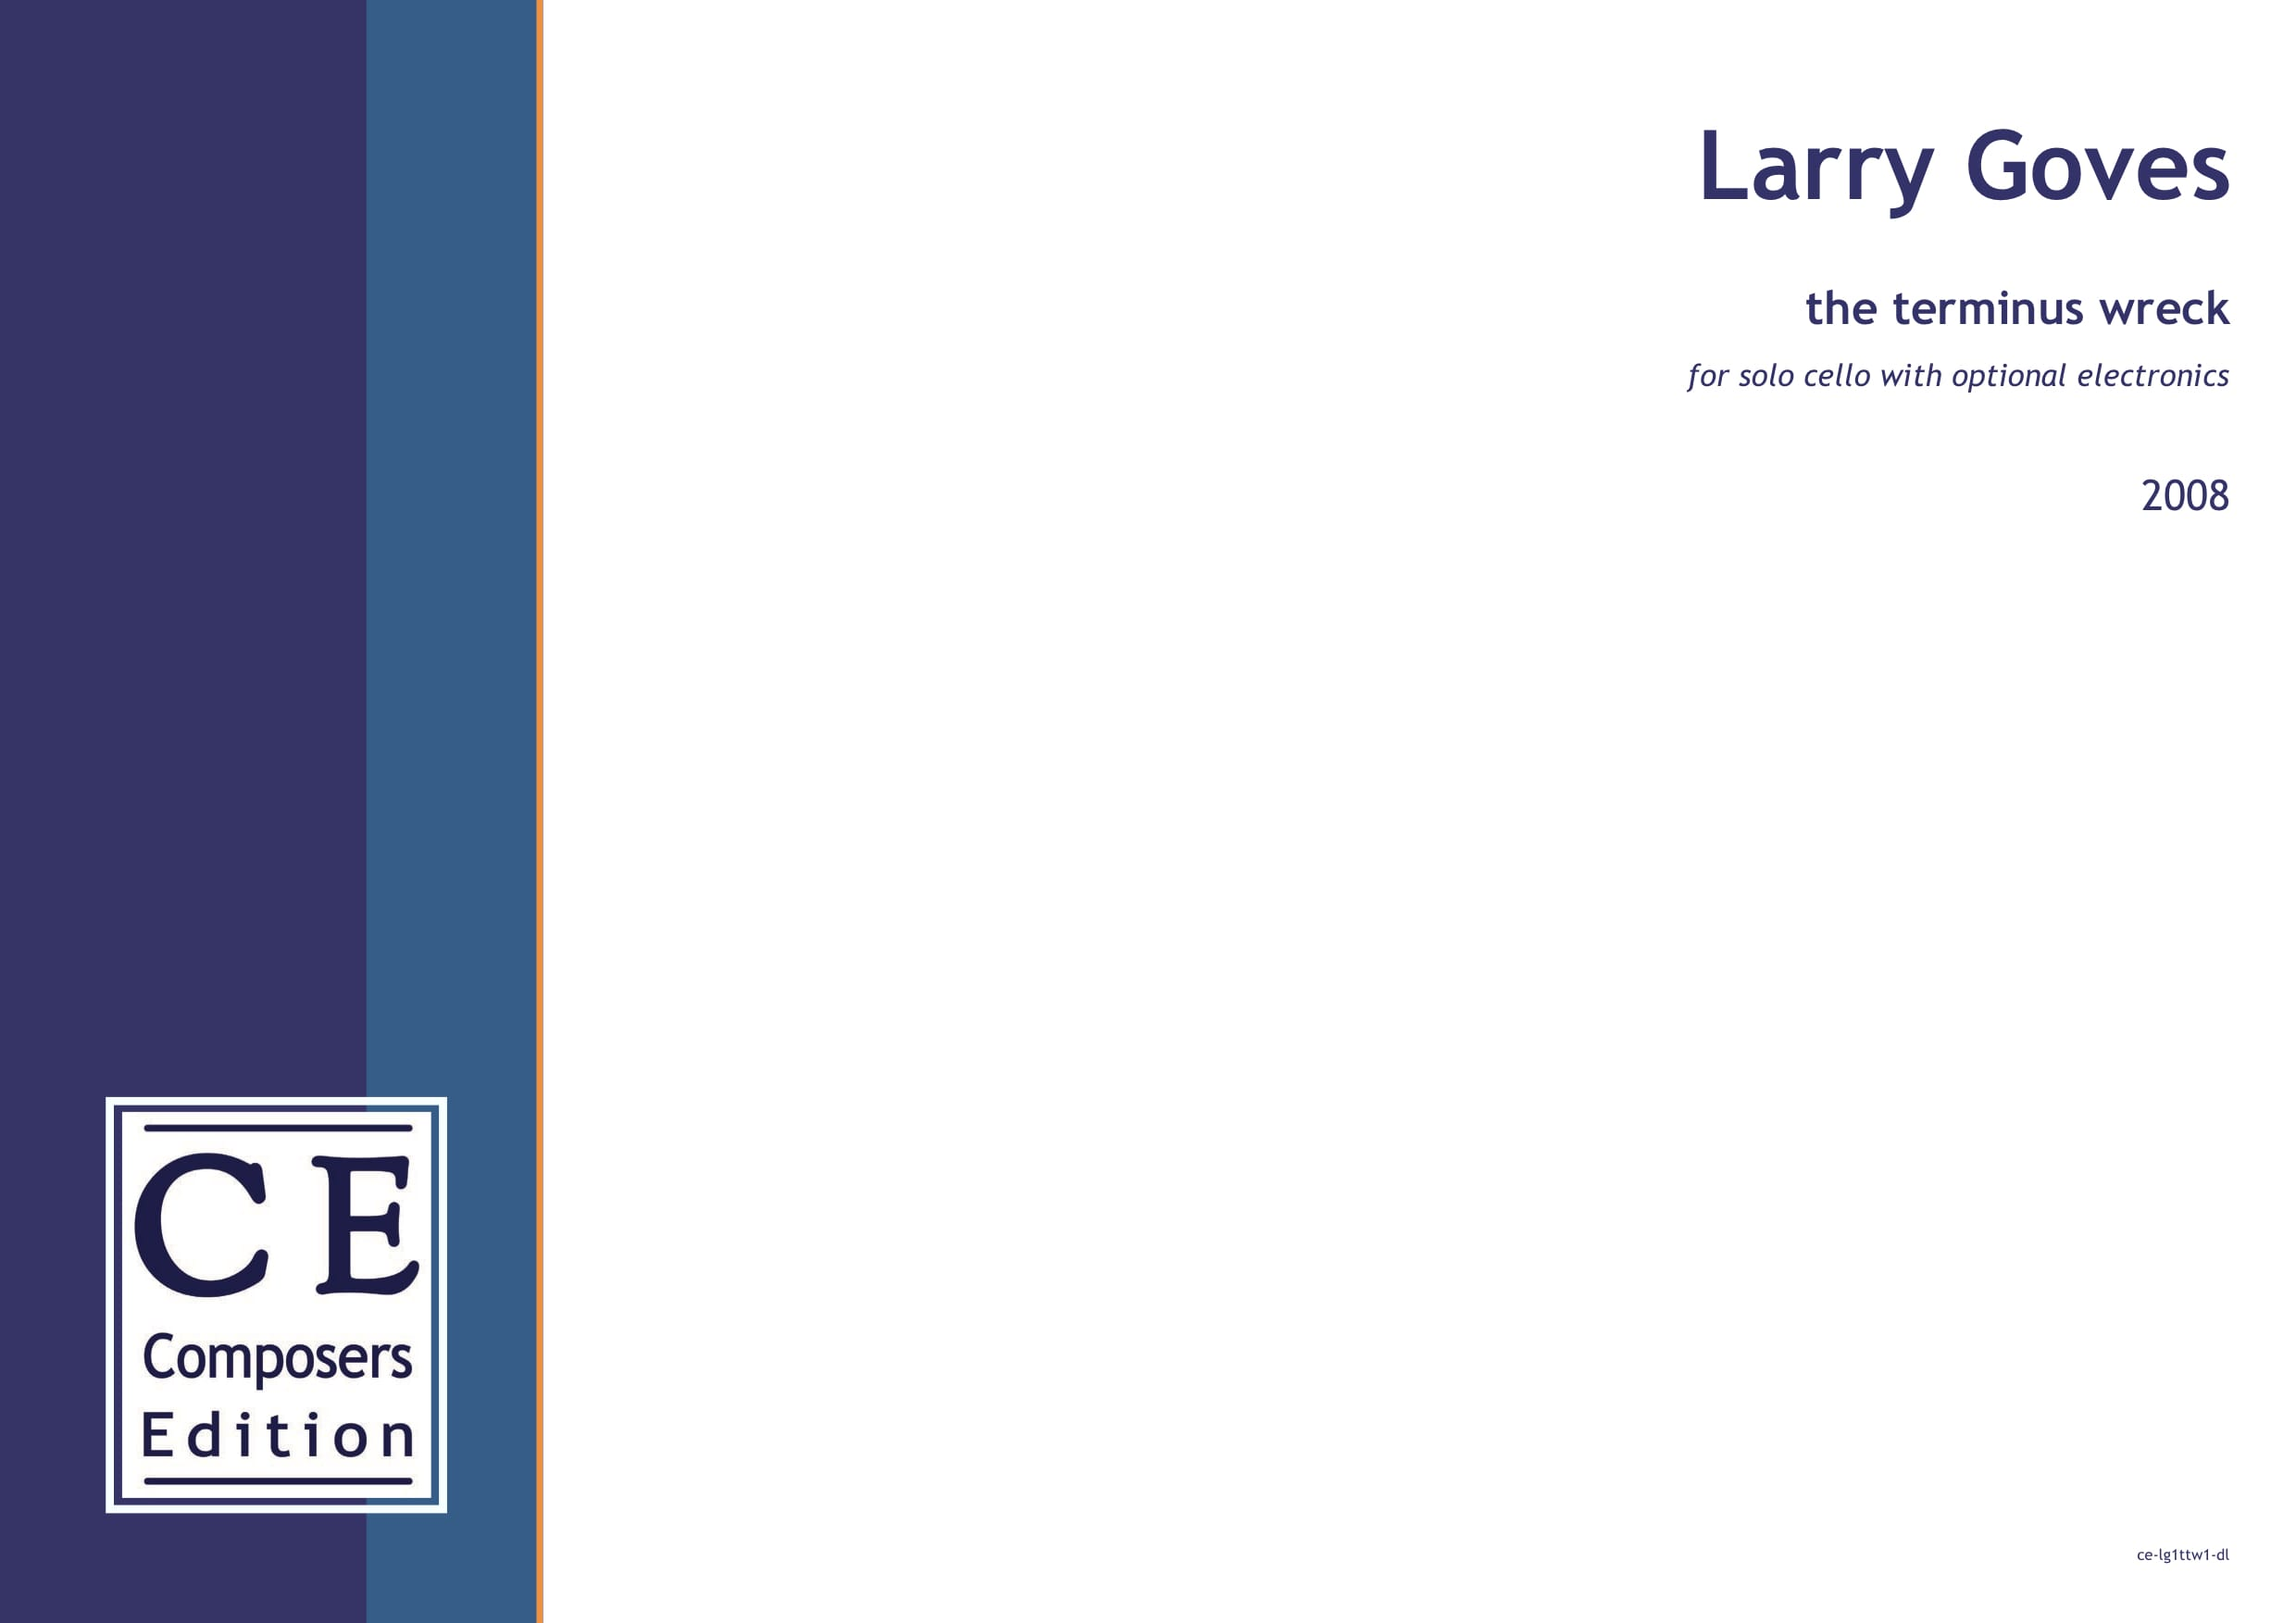 Larry Goves: the terminus wreck for solo cello with optional electronics